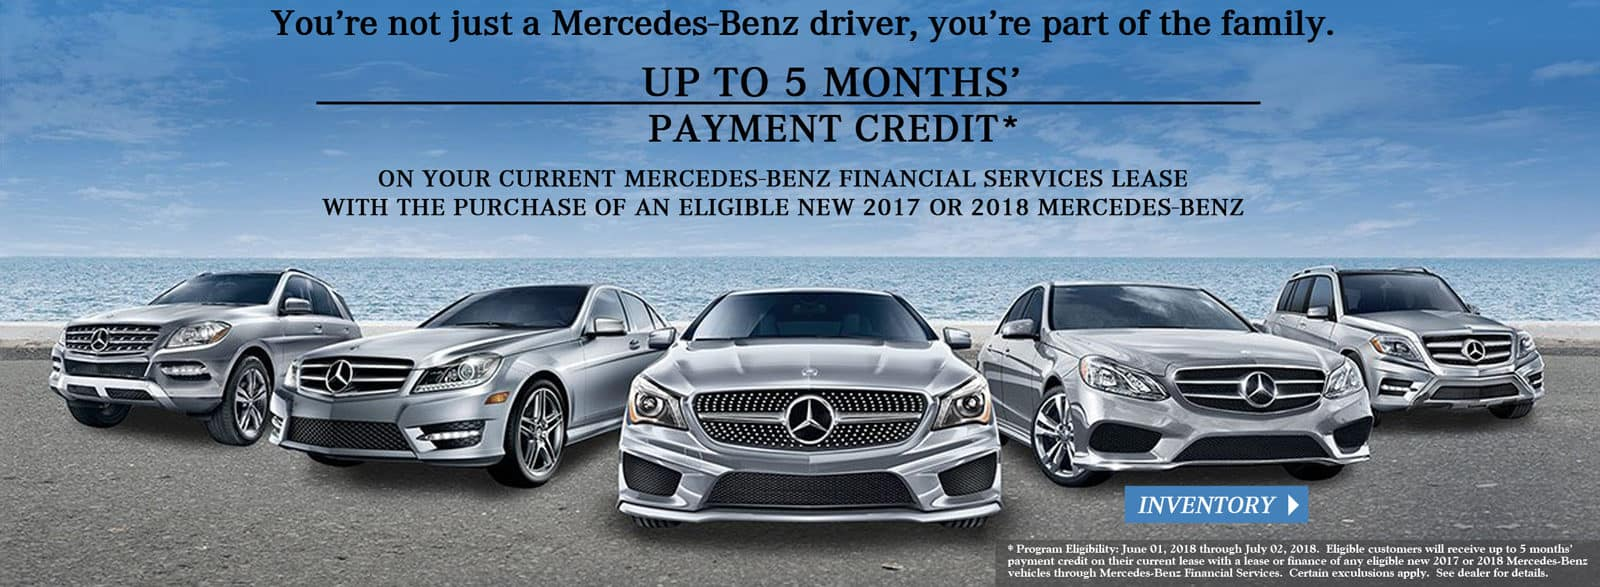 calgary mercedes dealership lone in benz star ny the alberta experience watch dealers